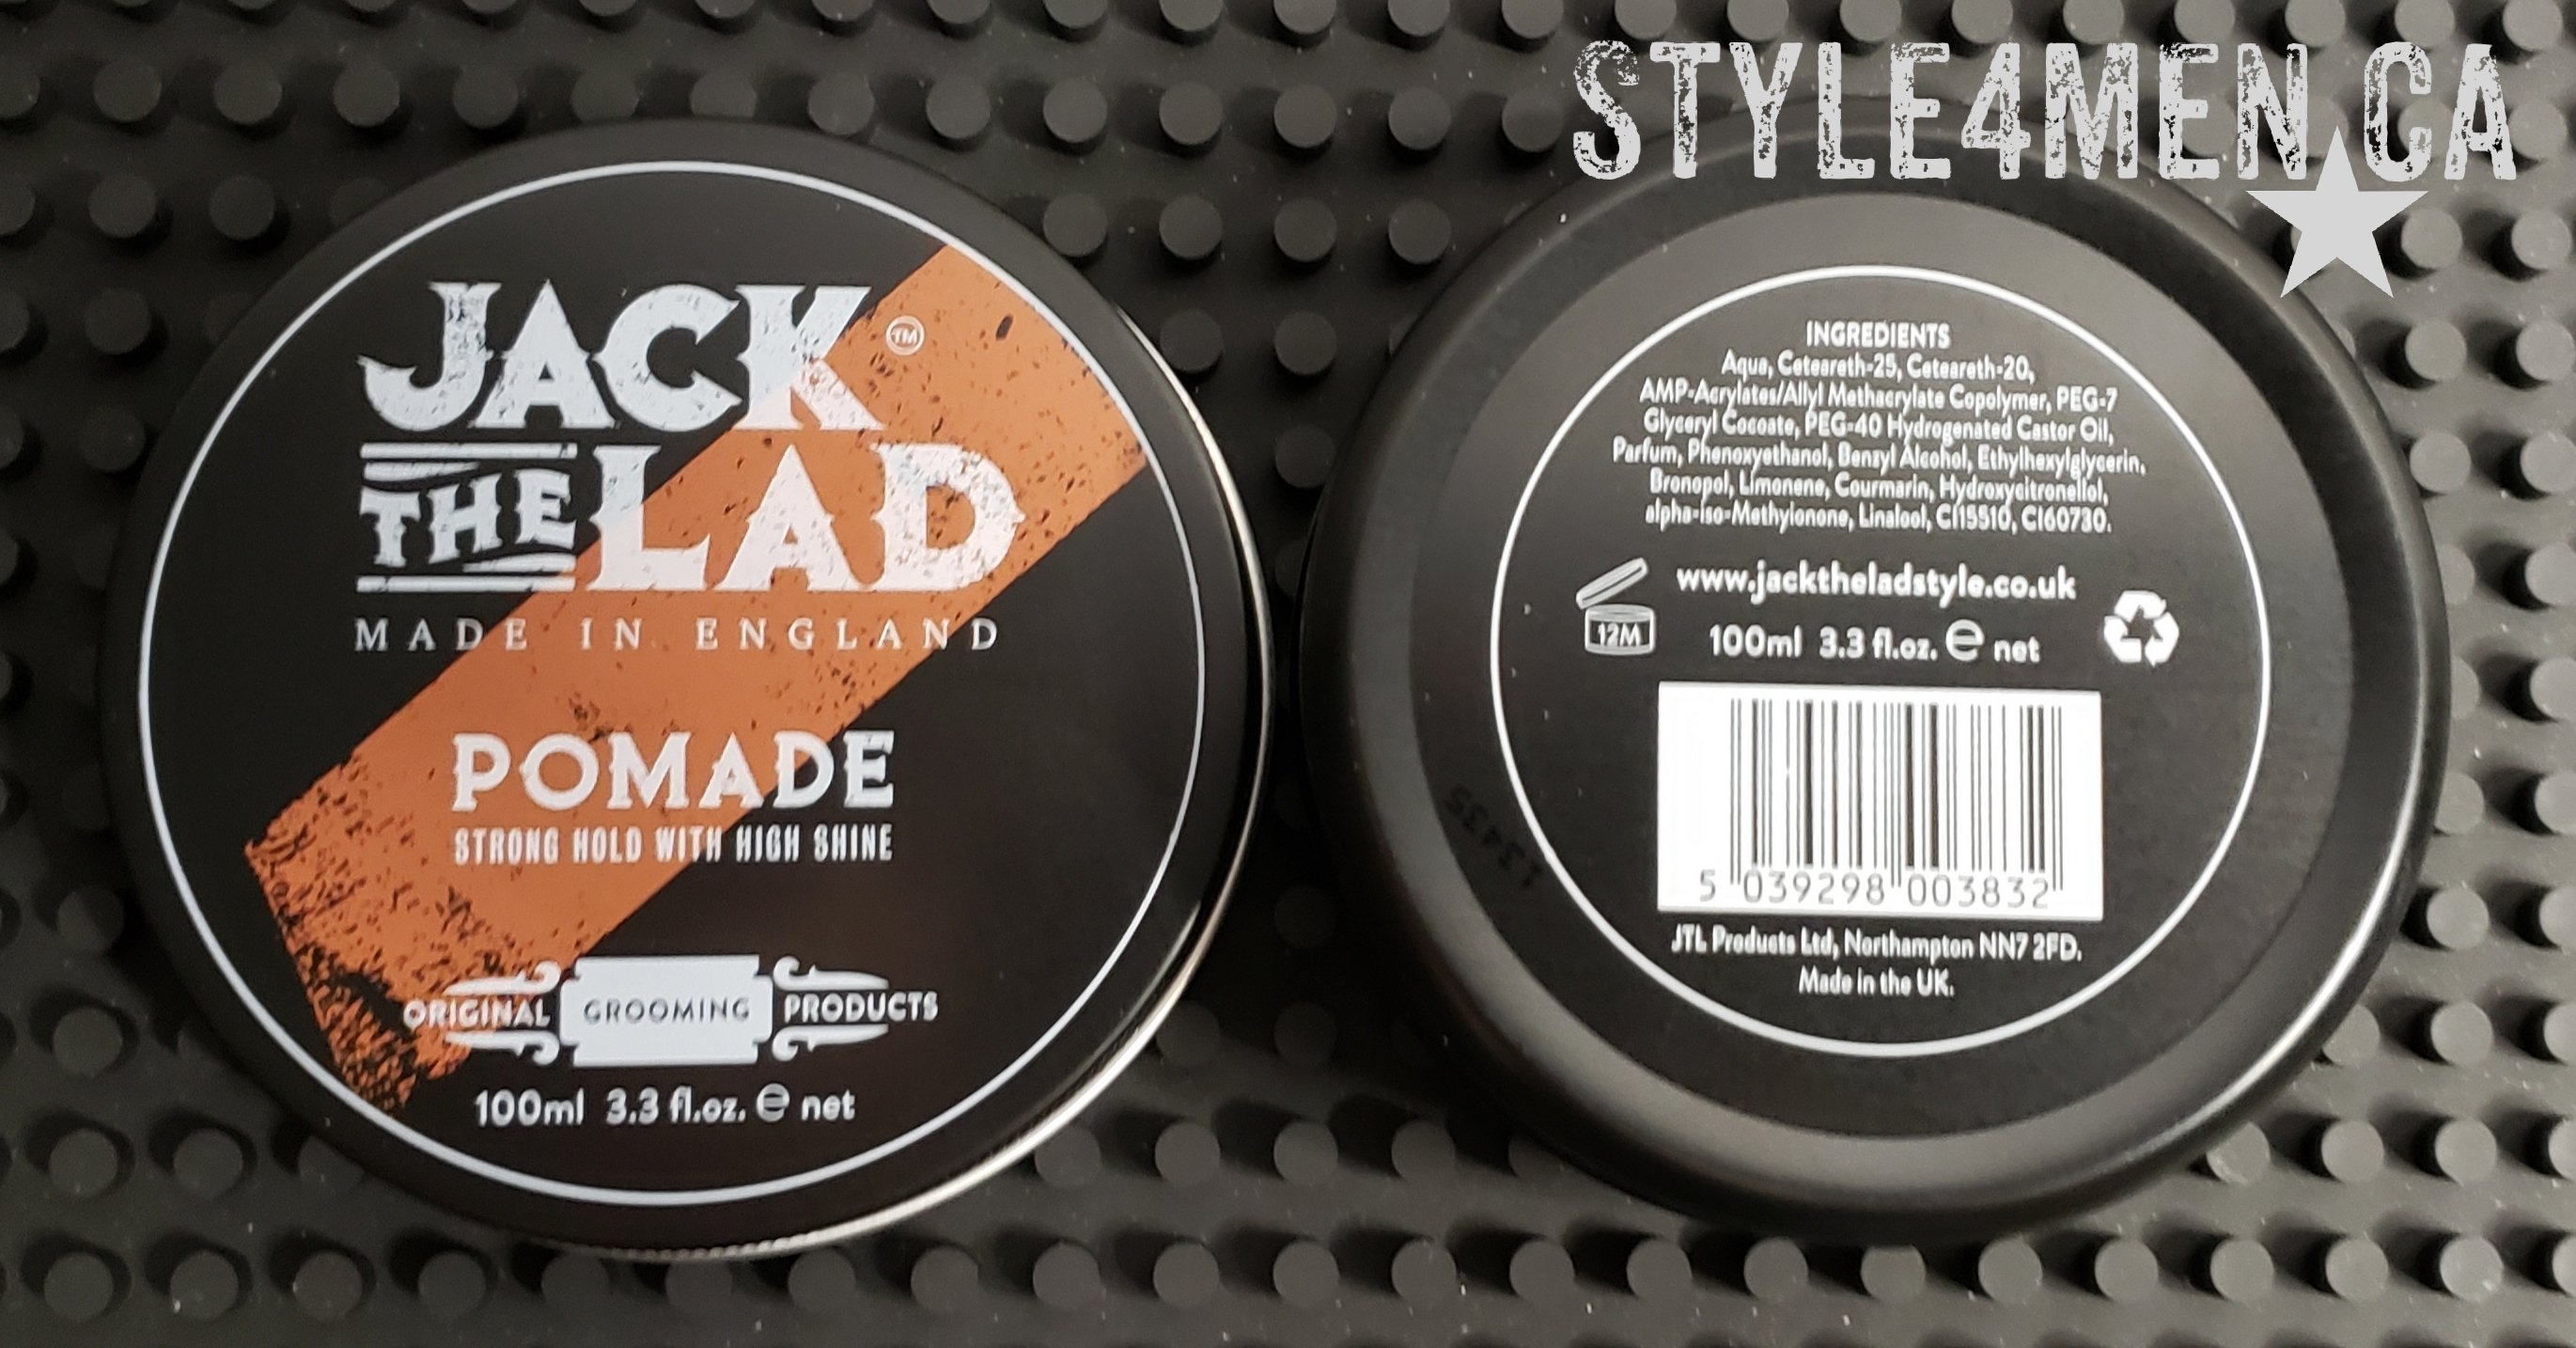 Jack The Lad Pomade